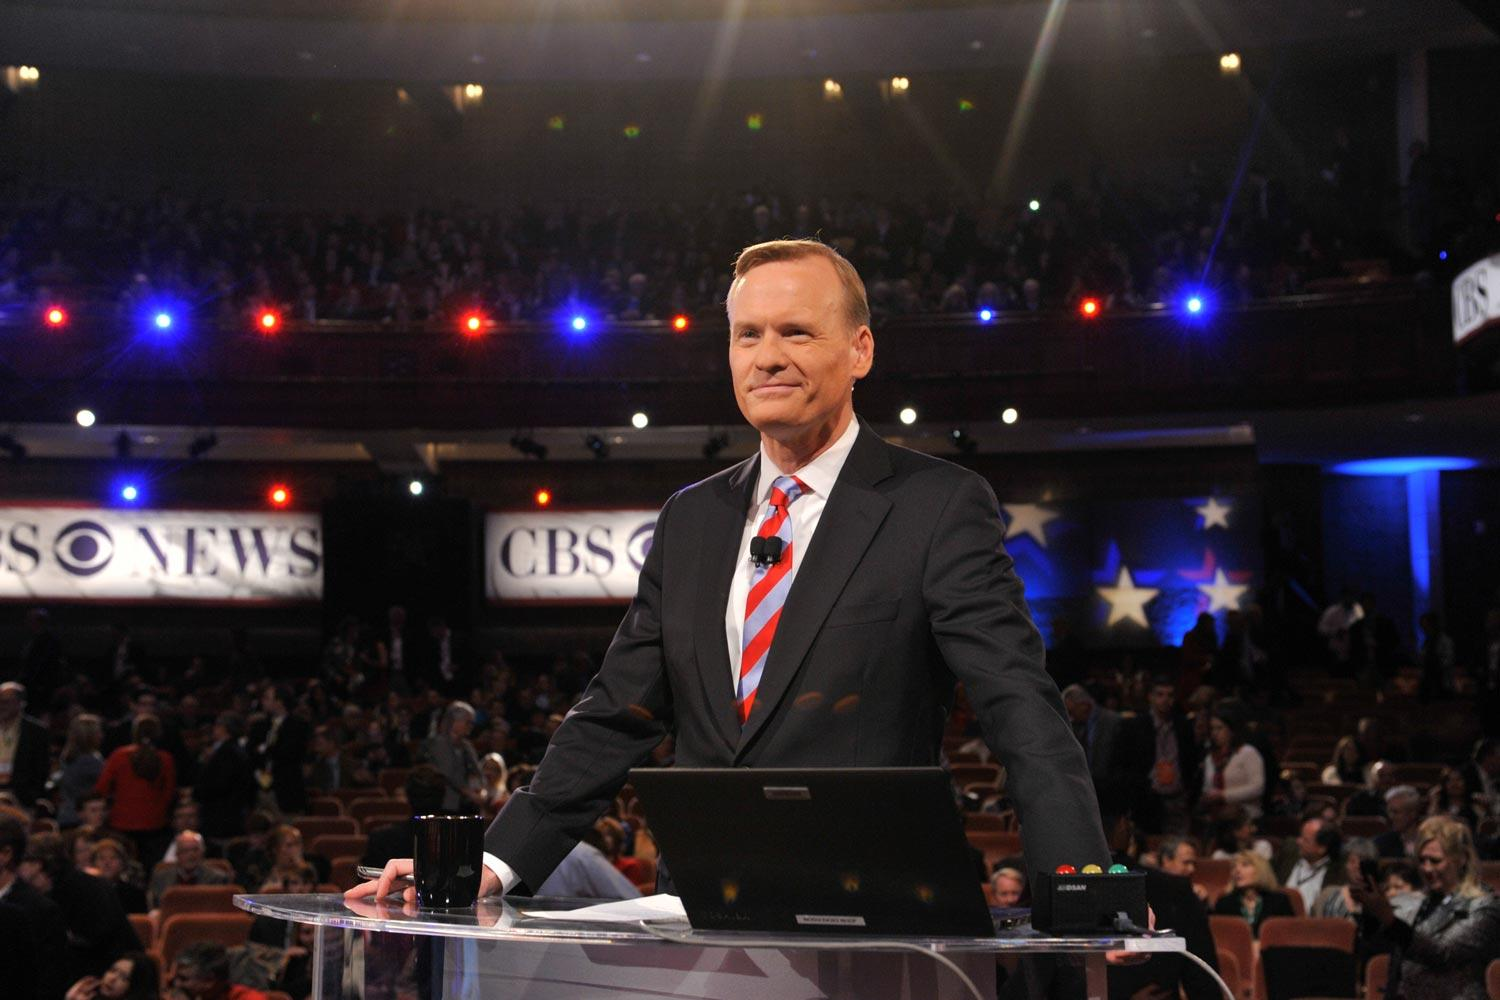 Alum John Dickerson Is Fired Up About Co-Hosting 'CBS This